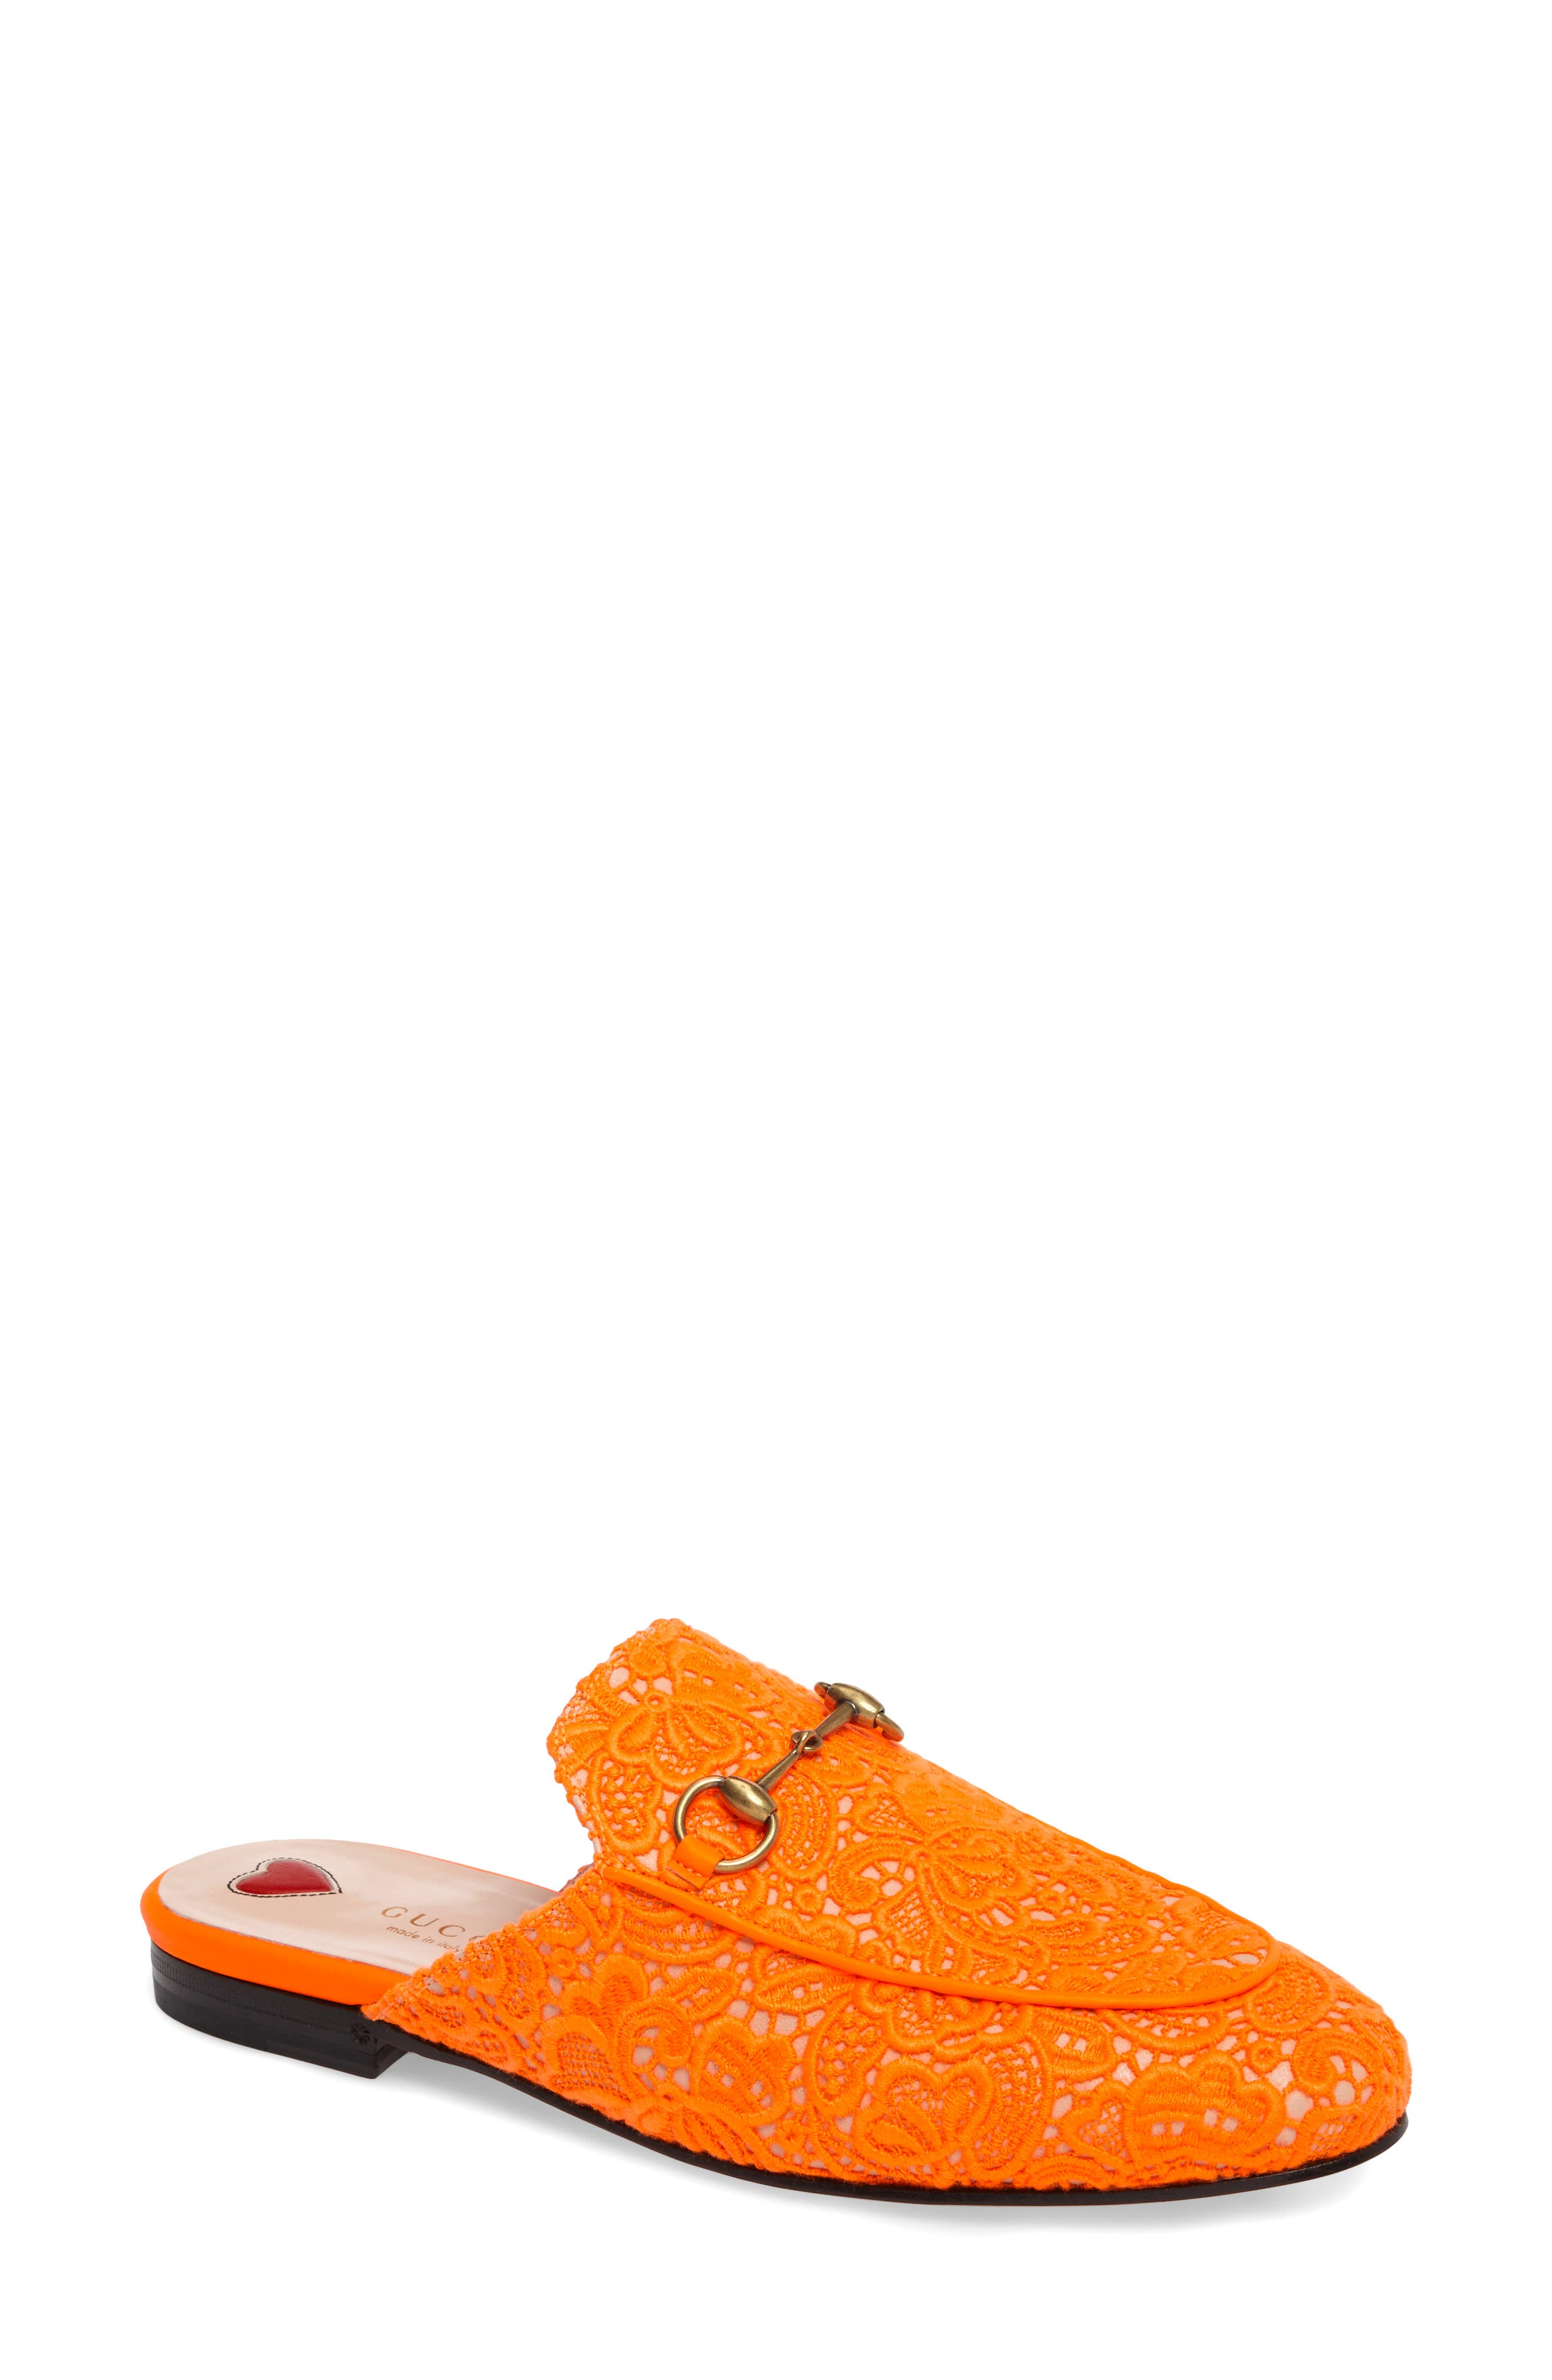 Princetown Loafer Mule,                         Main,                         color, 800